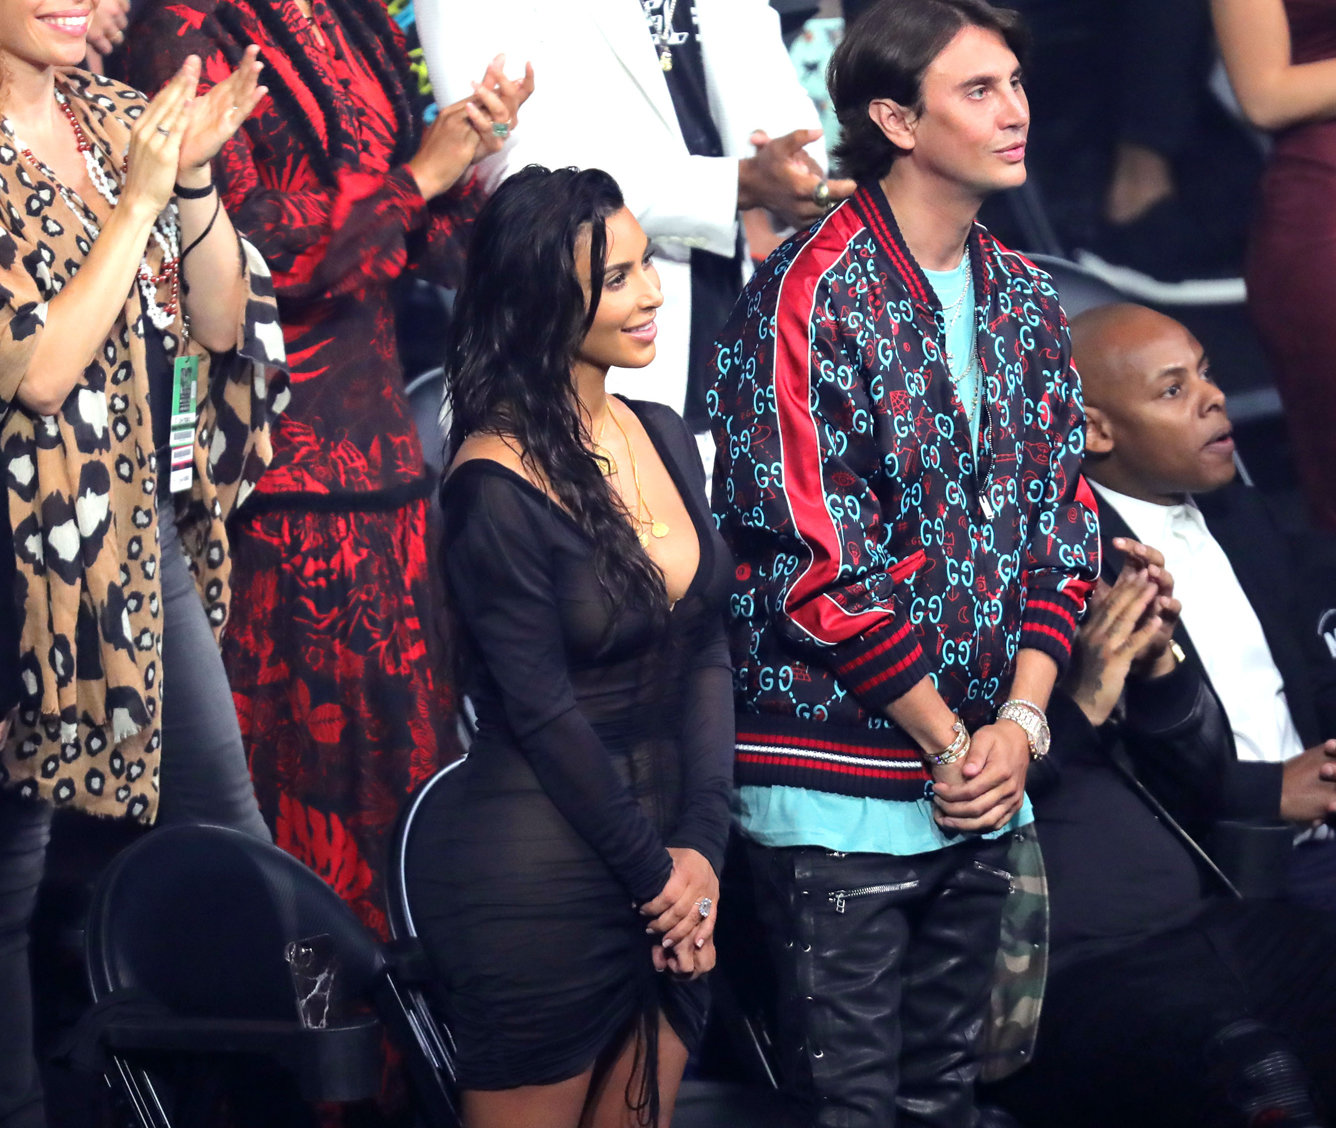 NEW YORK, NY - AUGUST 28:  Kim Kardashian West and Jonathan Cheban attend the 2016 MTV Video Music Awards at Madison Square Garden on August 28, 2016 in New York City.  (Photo by Neilson Barnard/MTV1617/Getty Images for MTV)